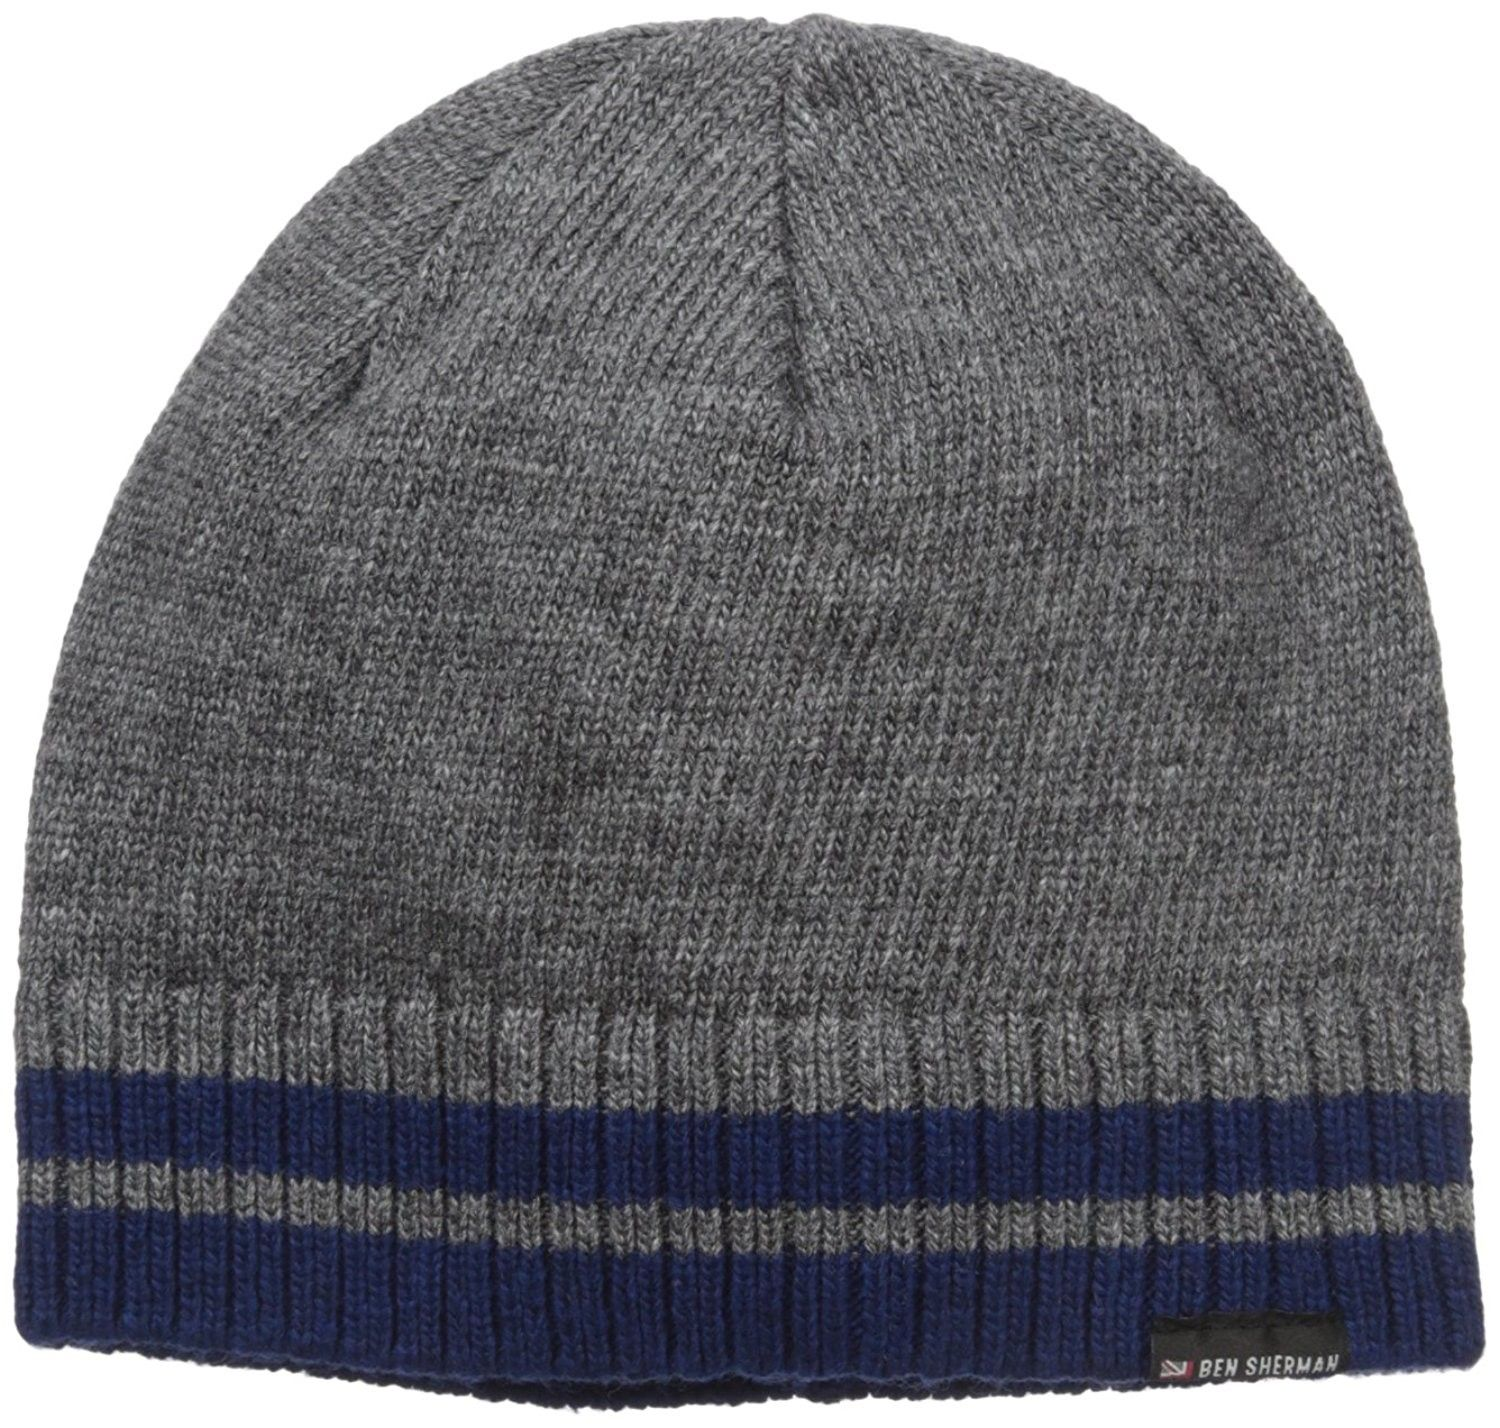 Men s Placed Tiping Knit Beanie - Smoked Pearl - CA12JLW4Y5V - Hats   Caps c3d18289f5b2